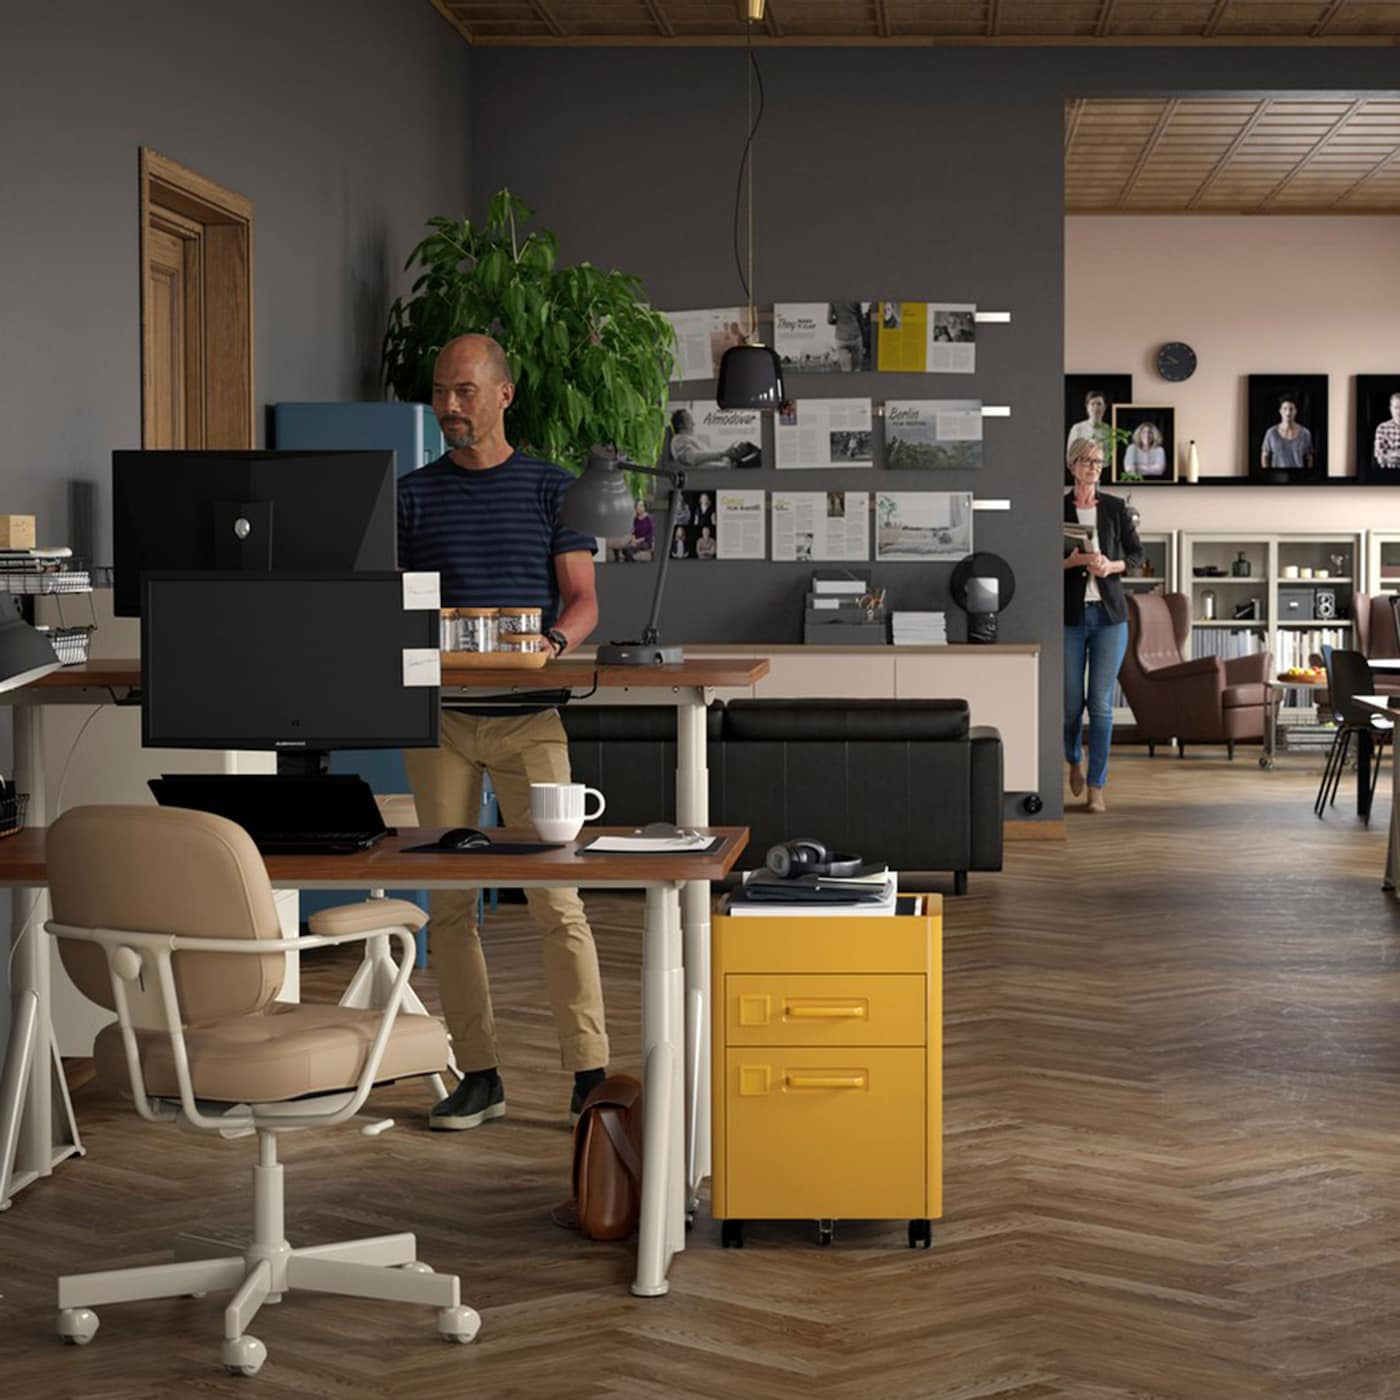 Shared office setting with IDÅSEN sit stand desks in brown beige with ALEFJÄLL light grey swivel chairs and IDÅSEN golden brown office drawers.